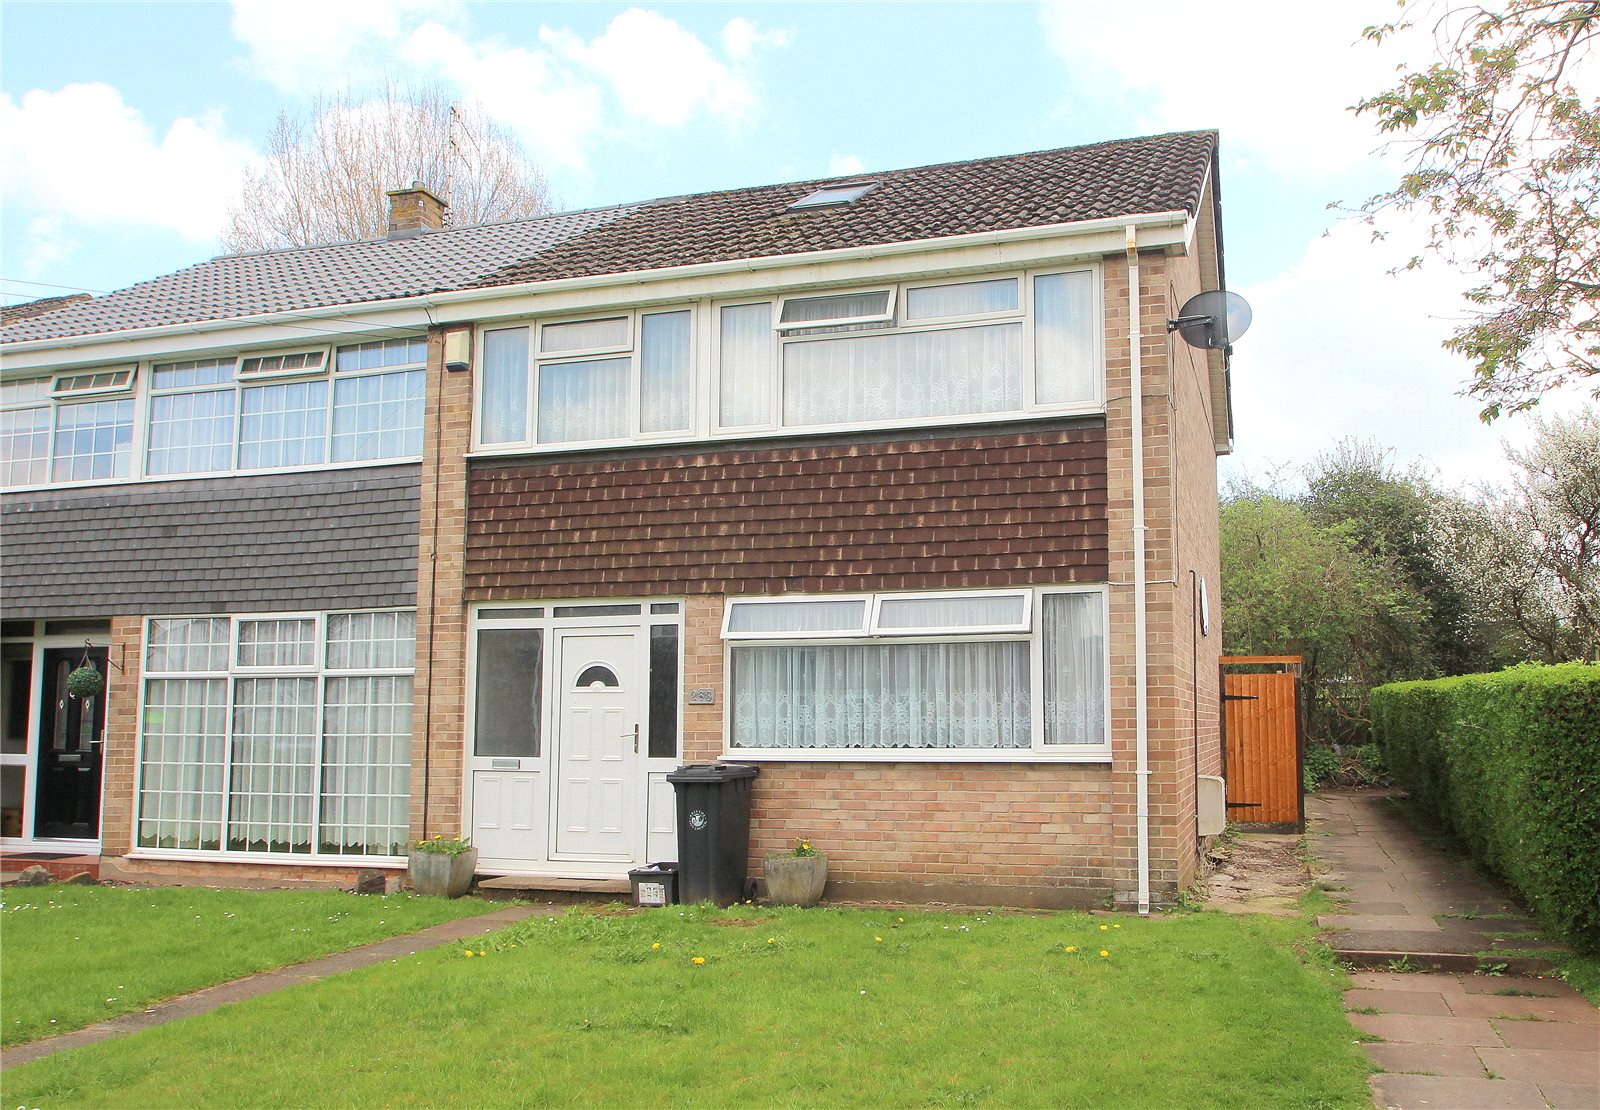 3 Bedrooms Semi Detached House for sale in Ashton Drive Ashton Vale Bristol BS3